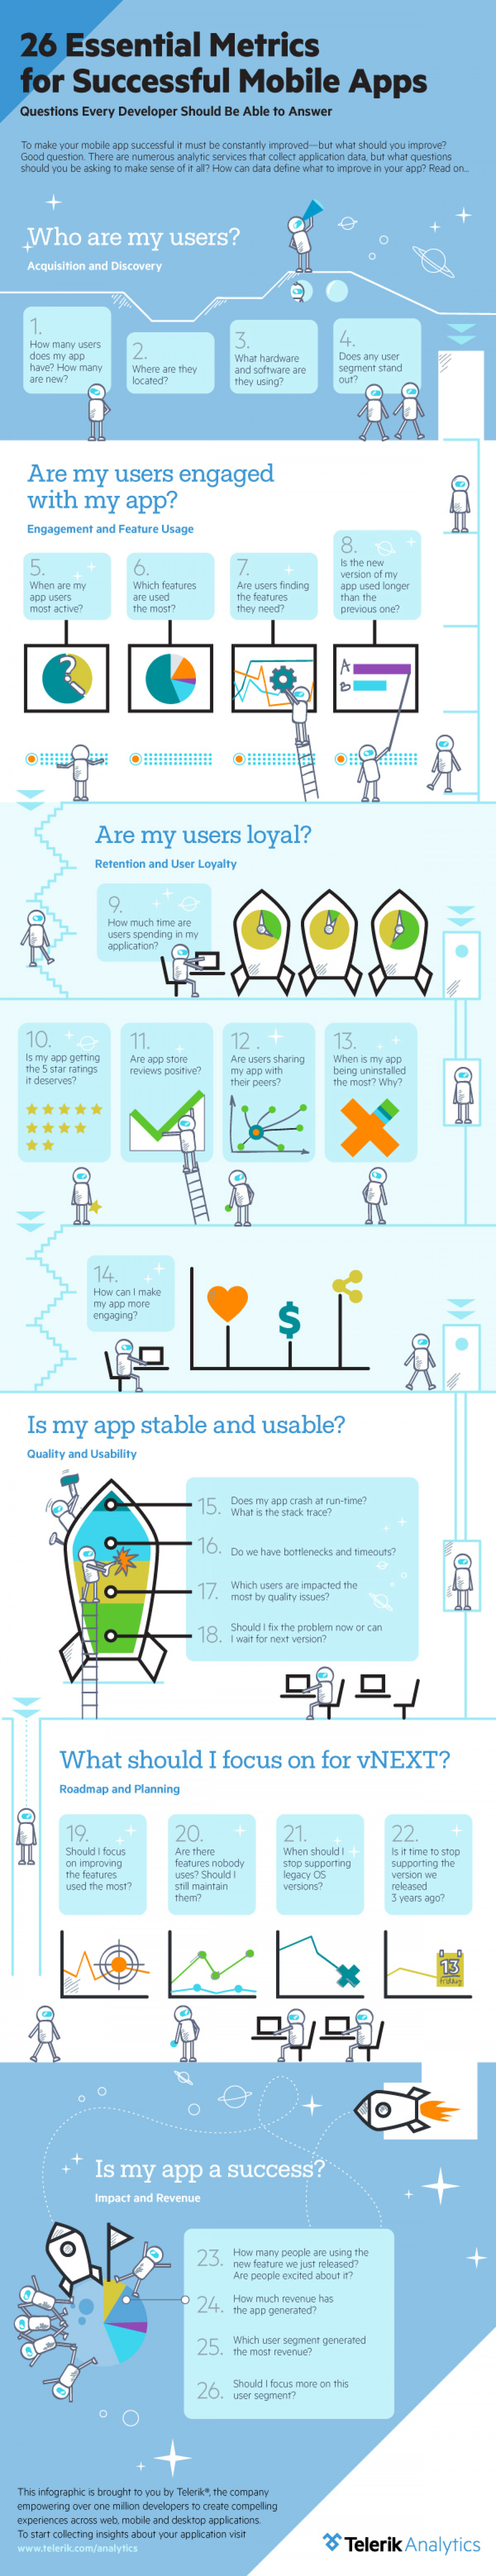 26 Essential Metrics for Successful Mobile Apps Infographic